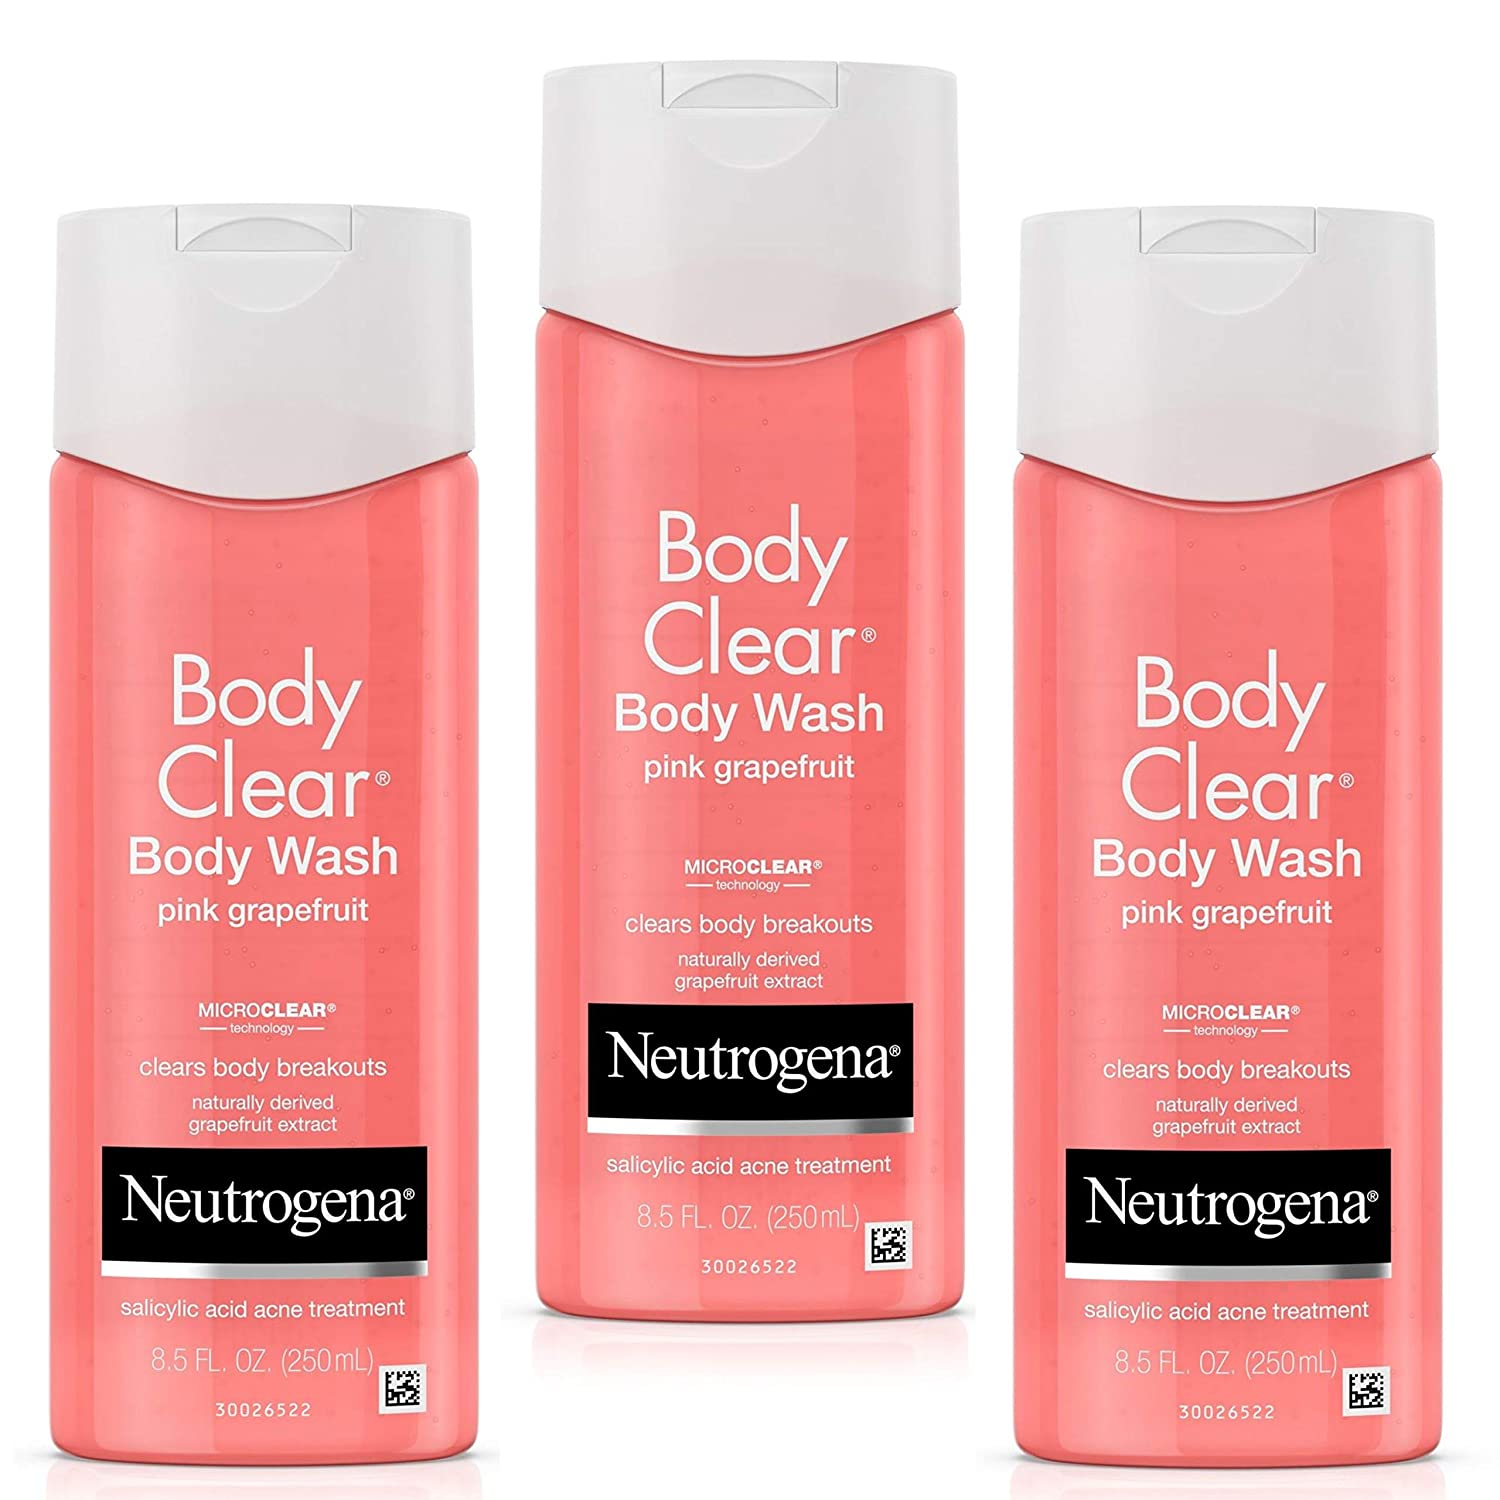 Amazon Com Neutrogena Body Clear Body Wash With Salicylic Acid Acne Treatment To Prevent Breakouts Pink Grapefruit Scent 8 5 Fl Oz 3 Pack Bath And Shower Gels Beauty